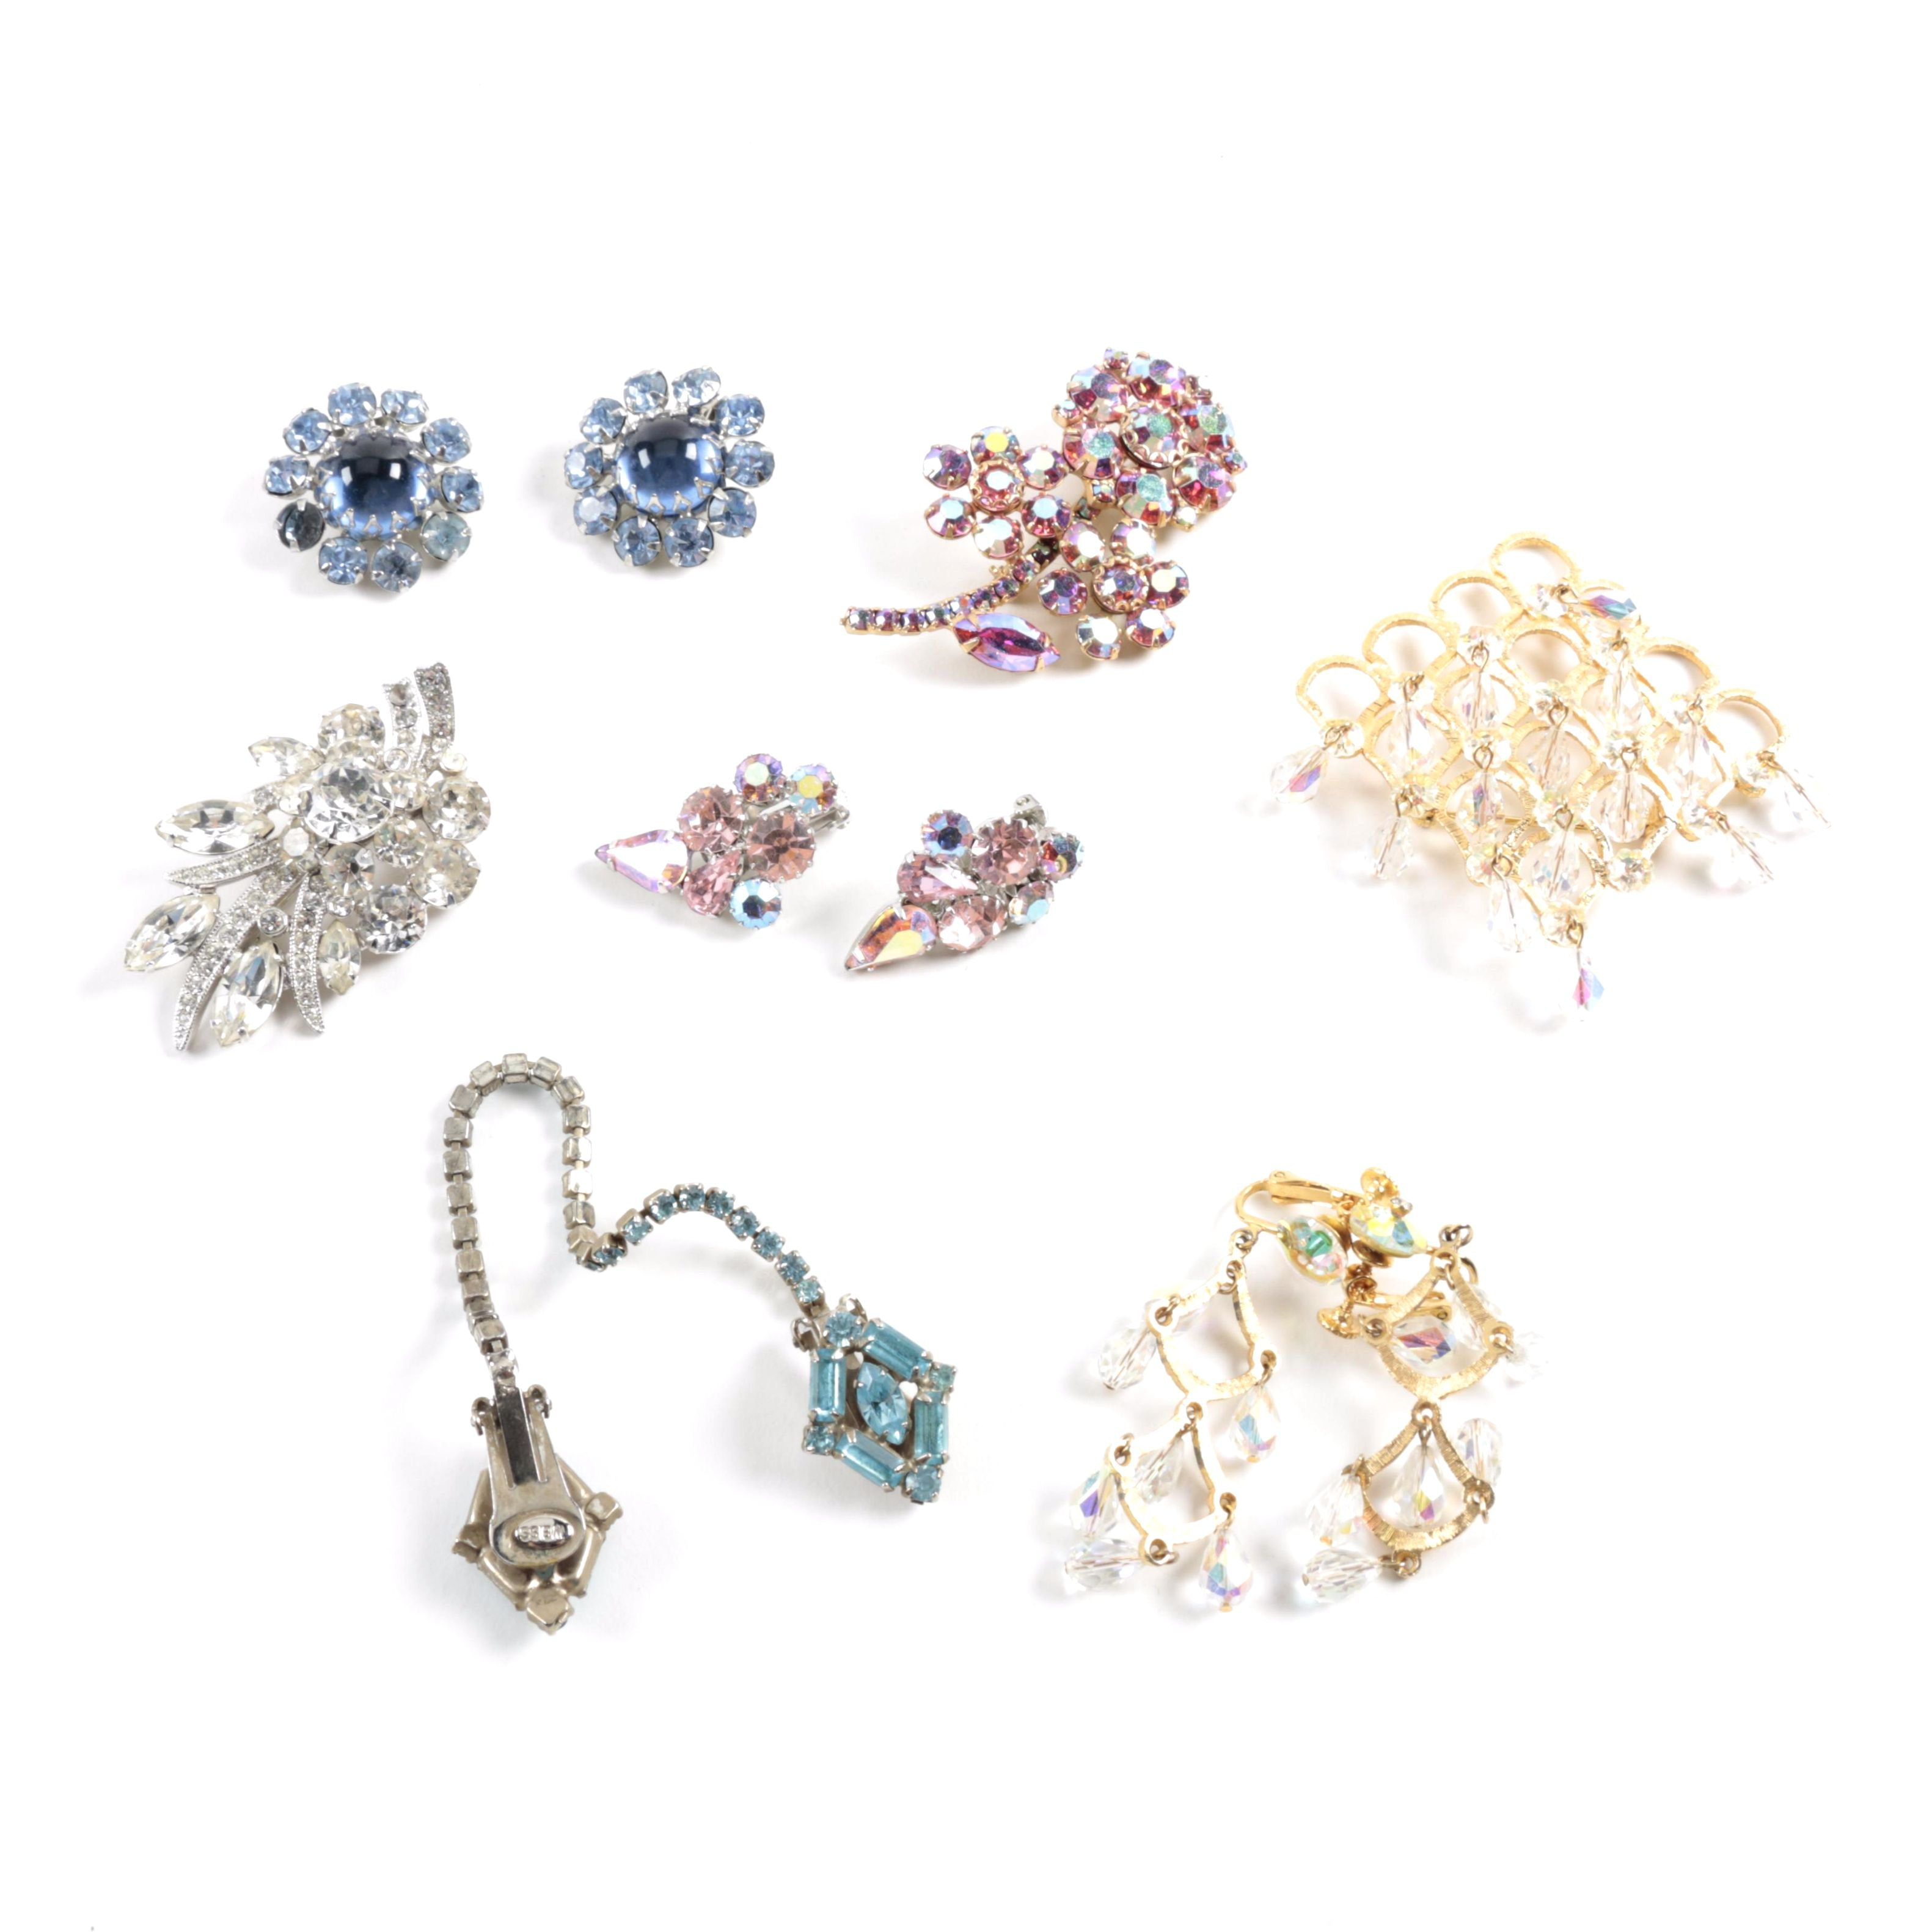 Vintage Costume Jewelry Including Eisenberg Ice and Weiss